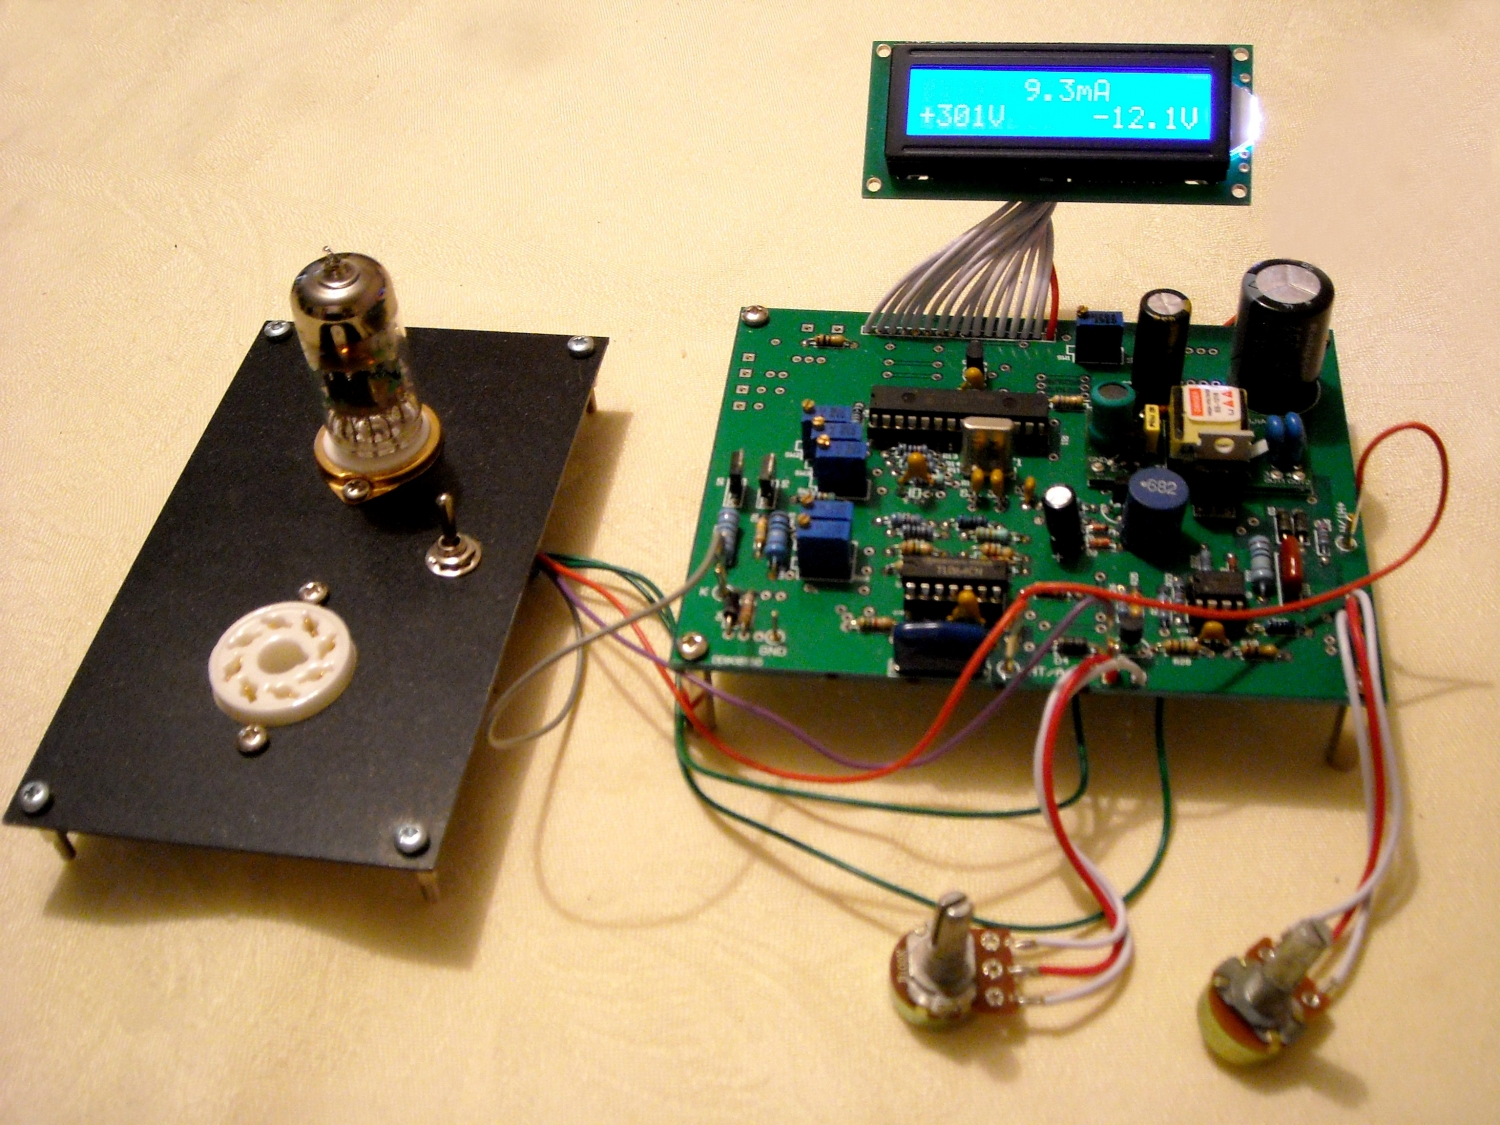 Digital Tube Tester : Digital tube tester industrial electronic components